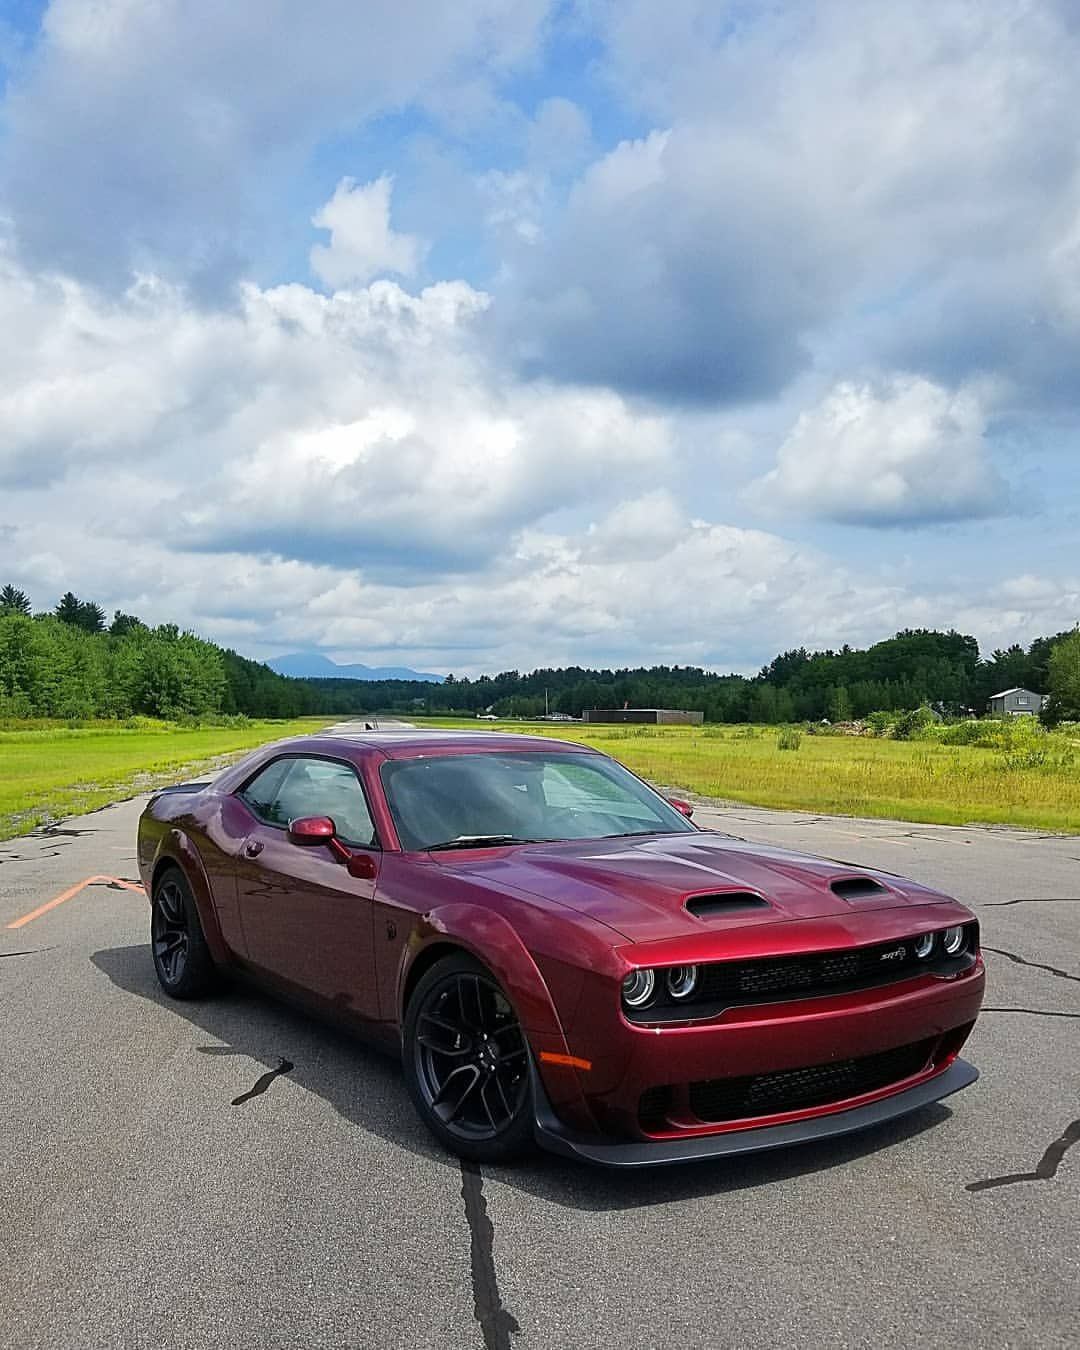 The 2019 dodgeofficial Challenger Redeye is on point